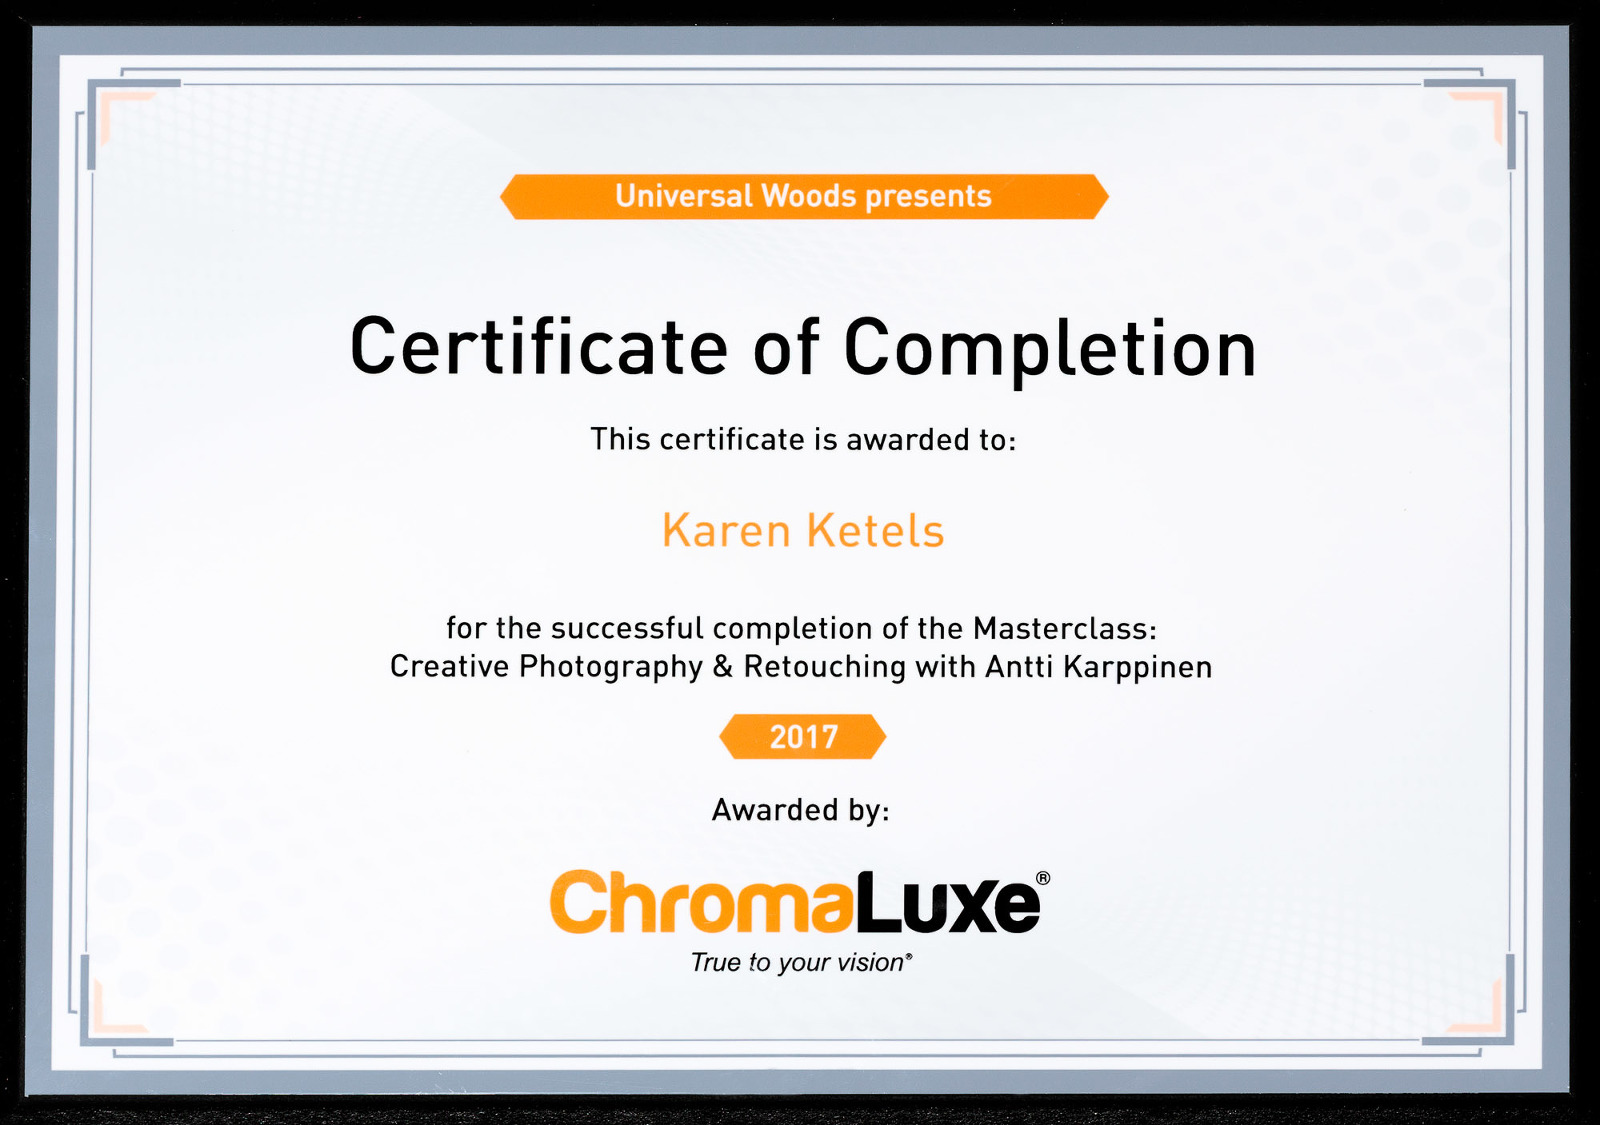 Karen Ketels award Chromaluxe, Masterclass Creative Photography & Retouching with Antti Karppinen